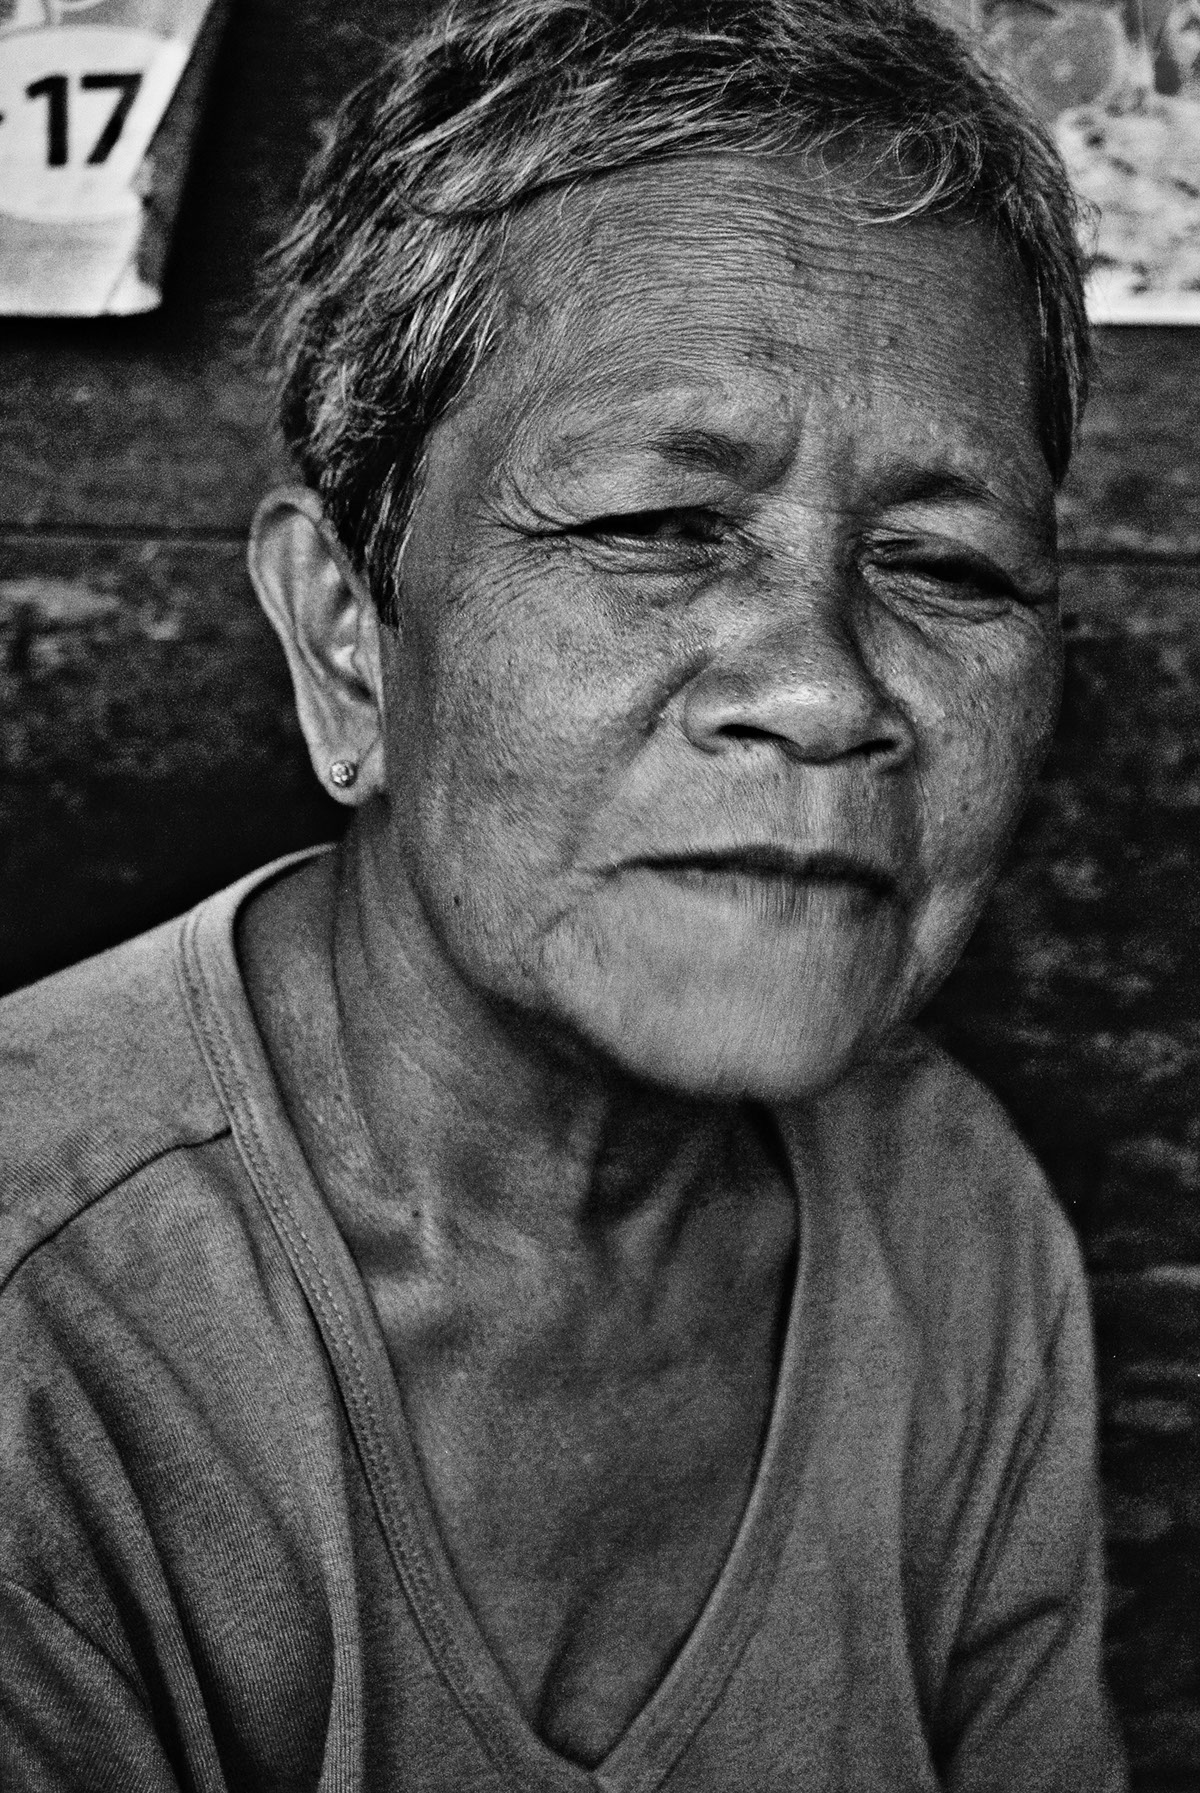 Black and white portrait of old people on behance